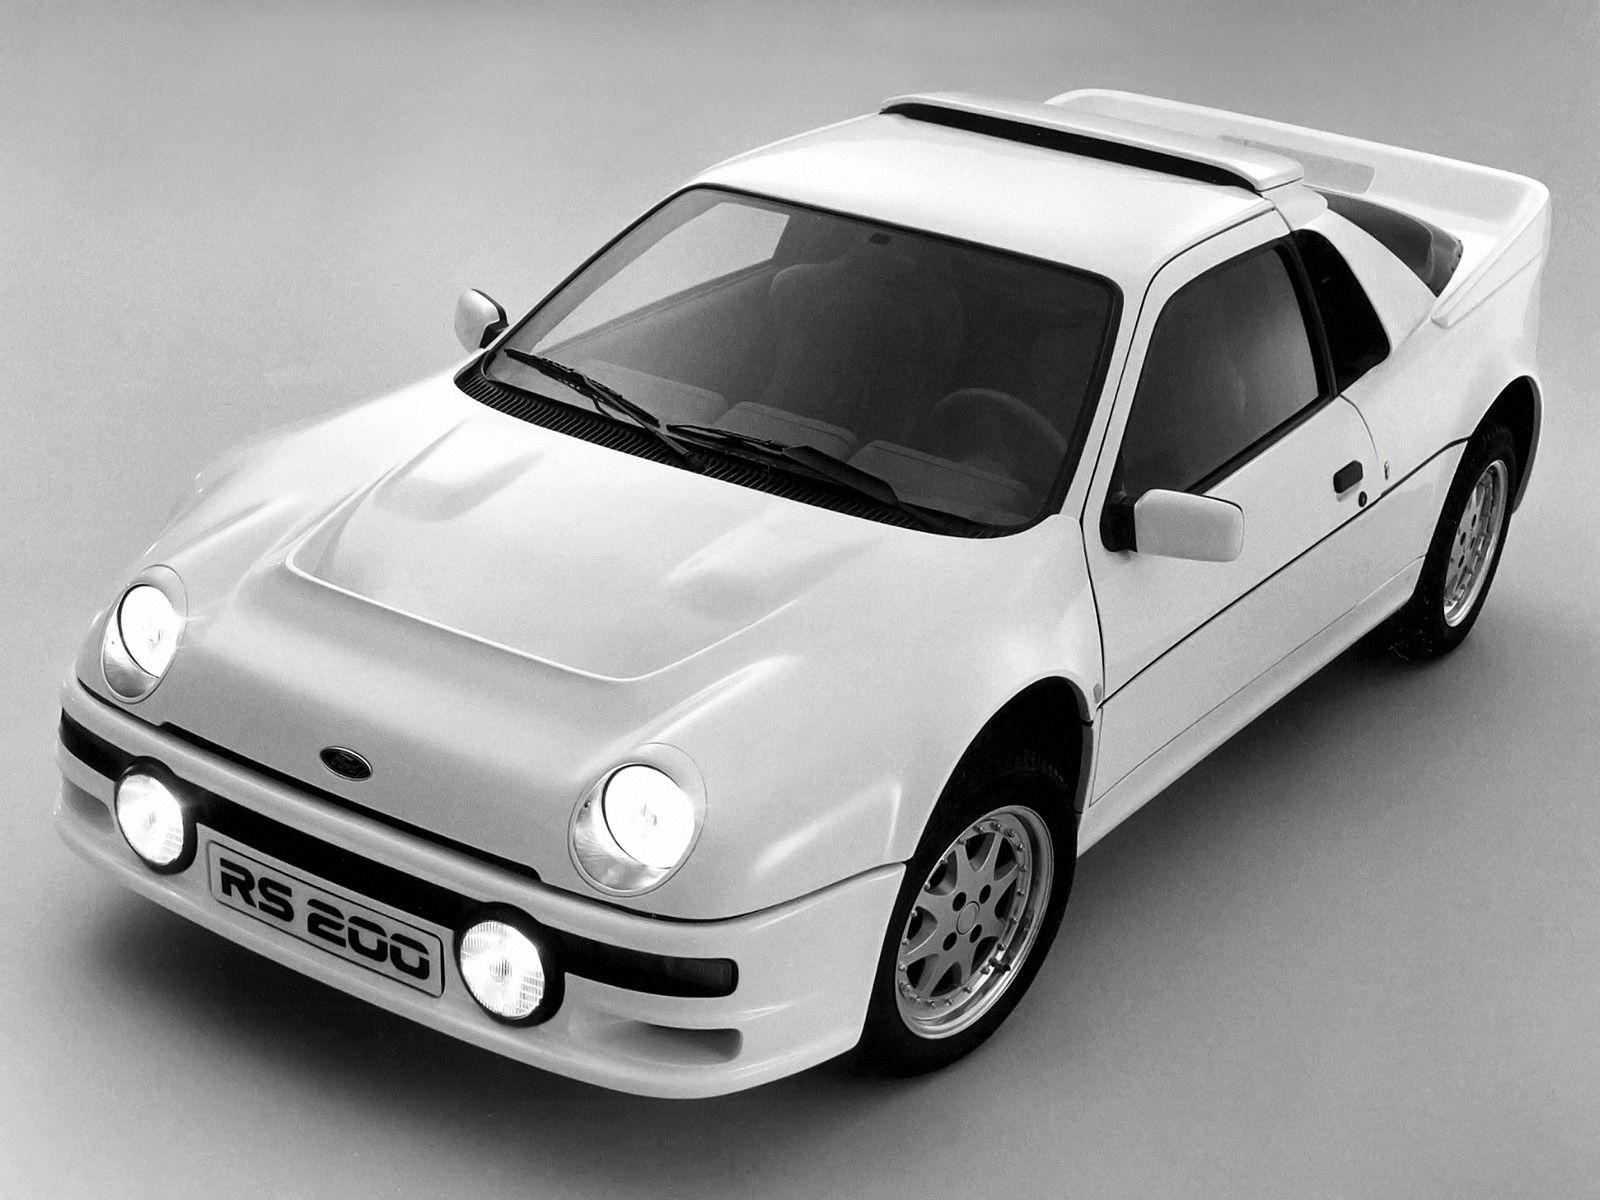 1984 86 Ford Rs200 Ford Rs